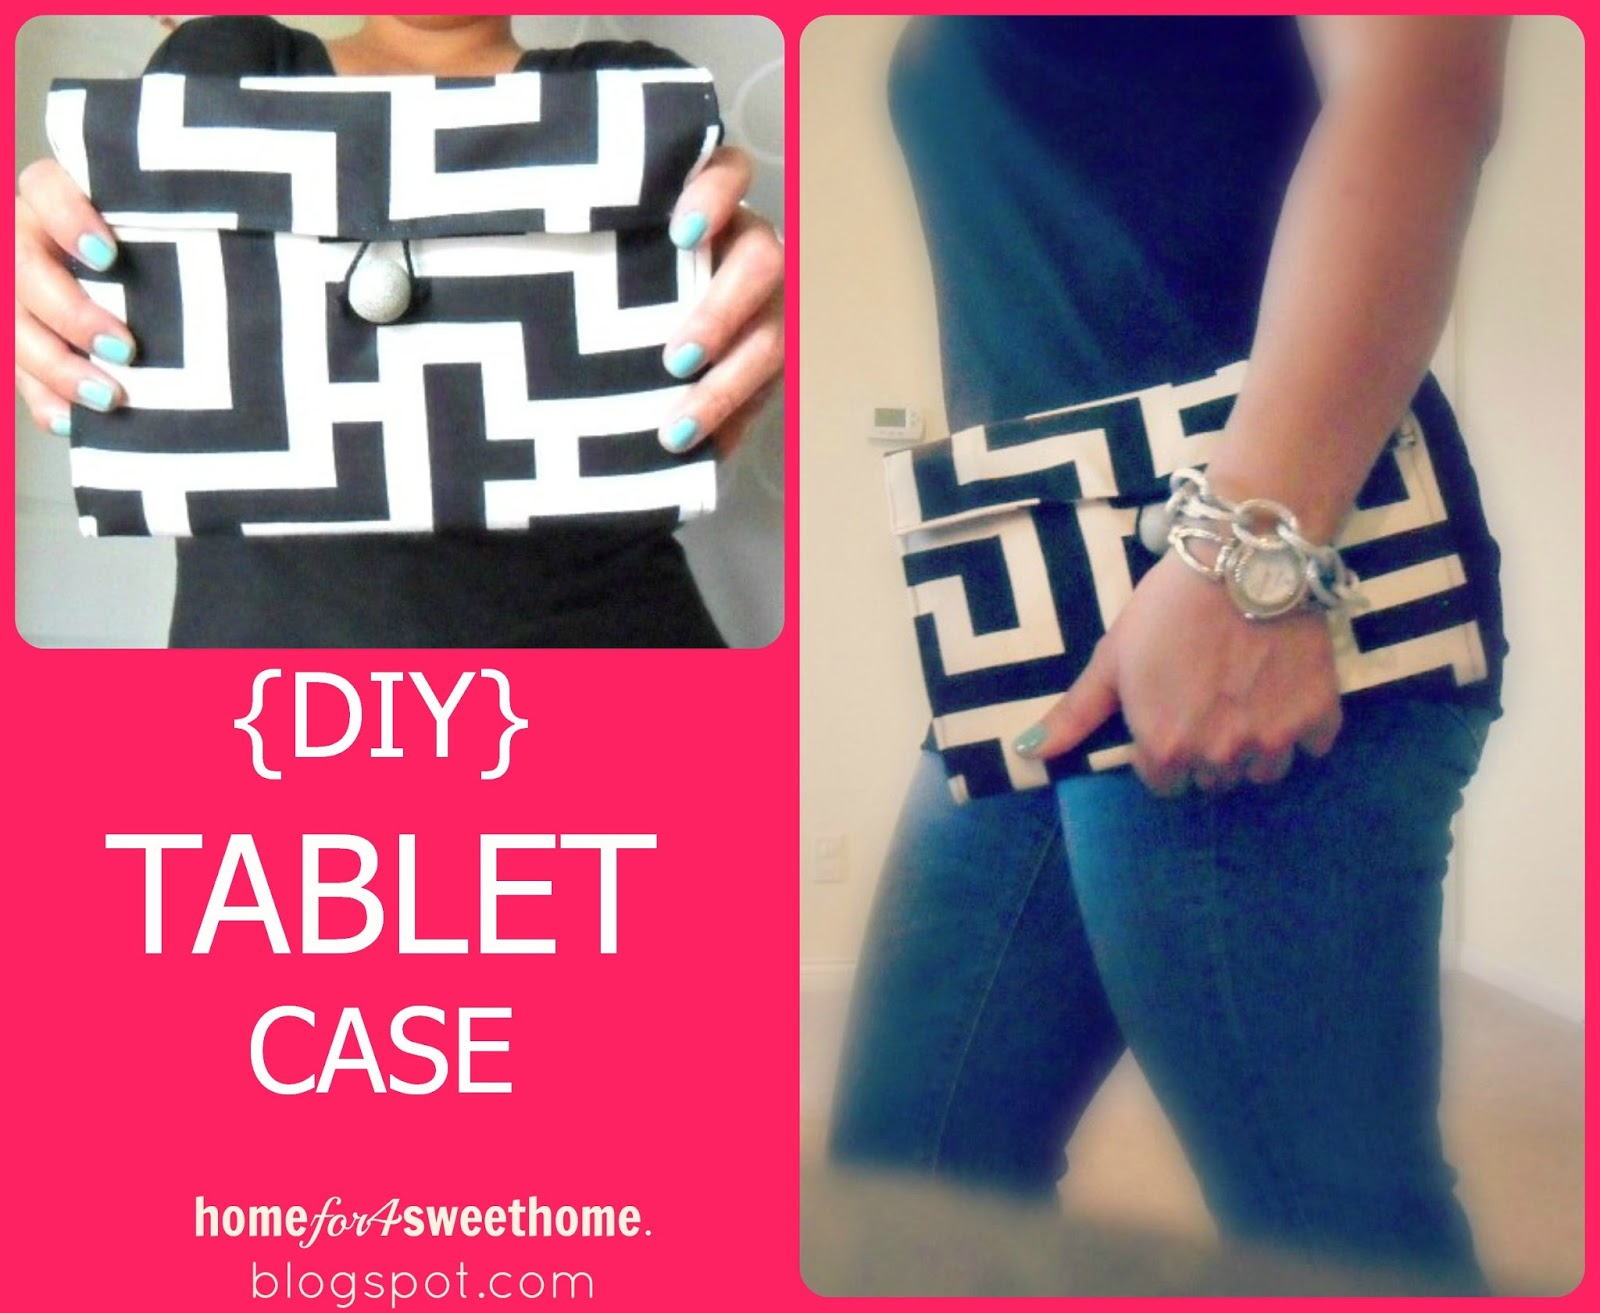 ... over at Consider Me Inspired sharing my {DIY} Tablet Case tutorial